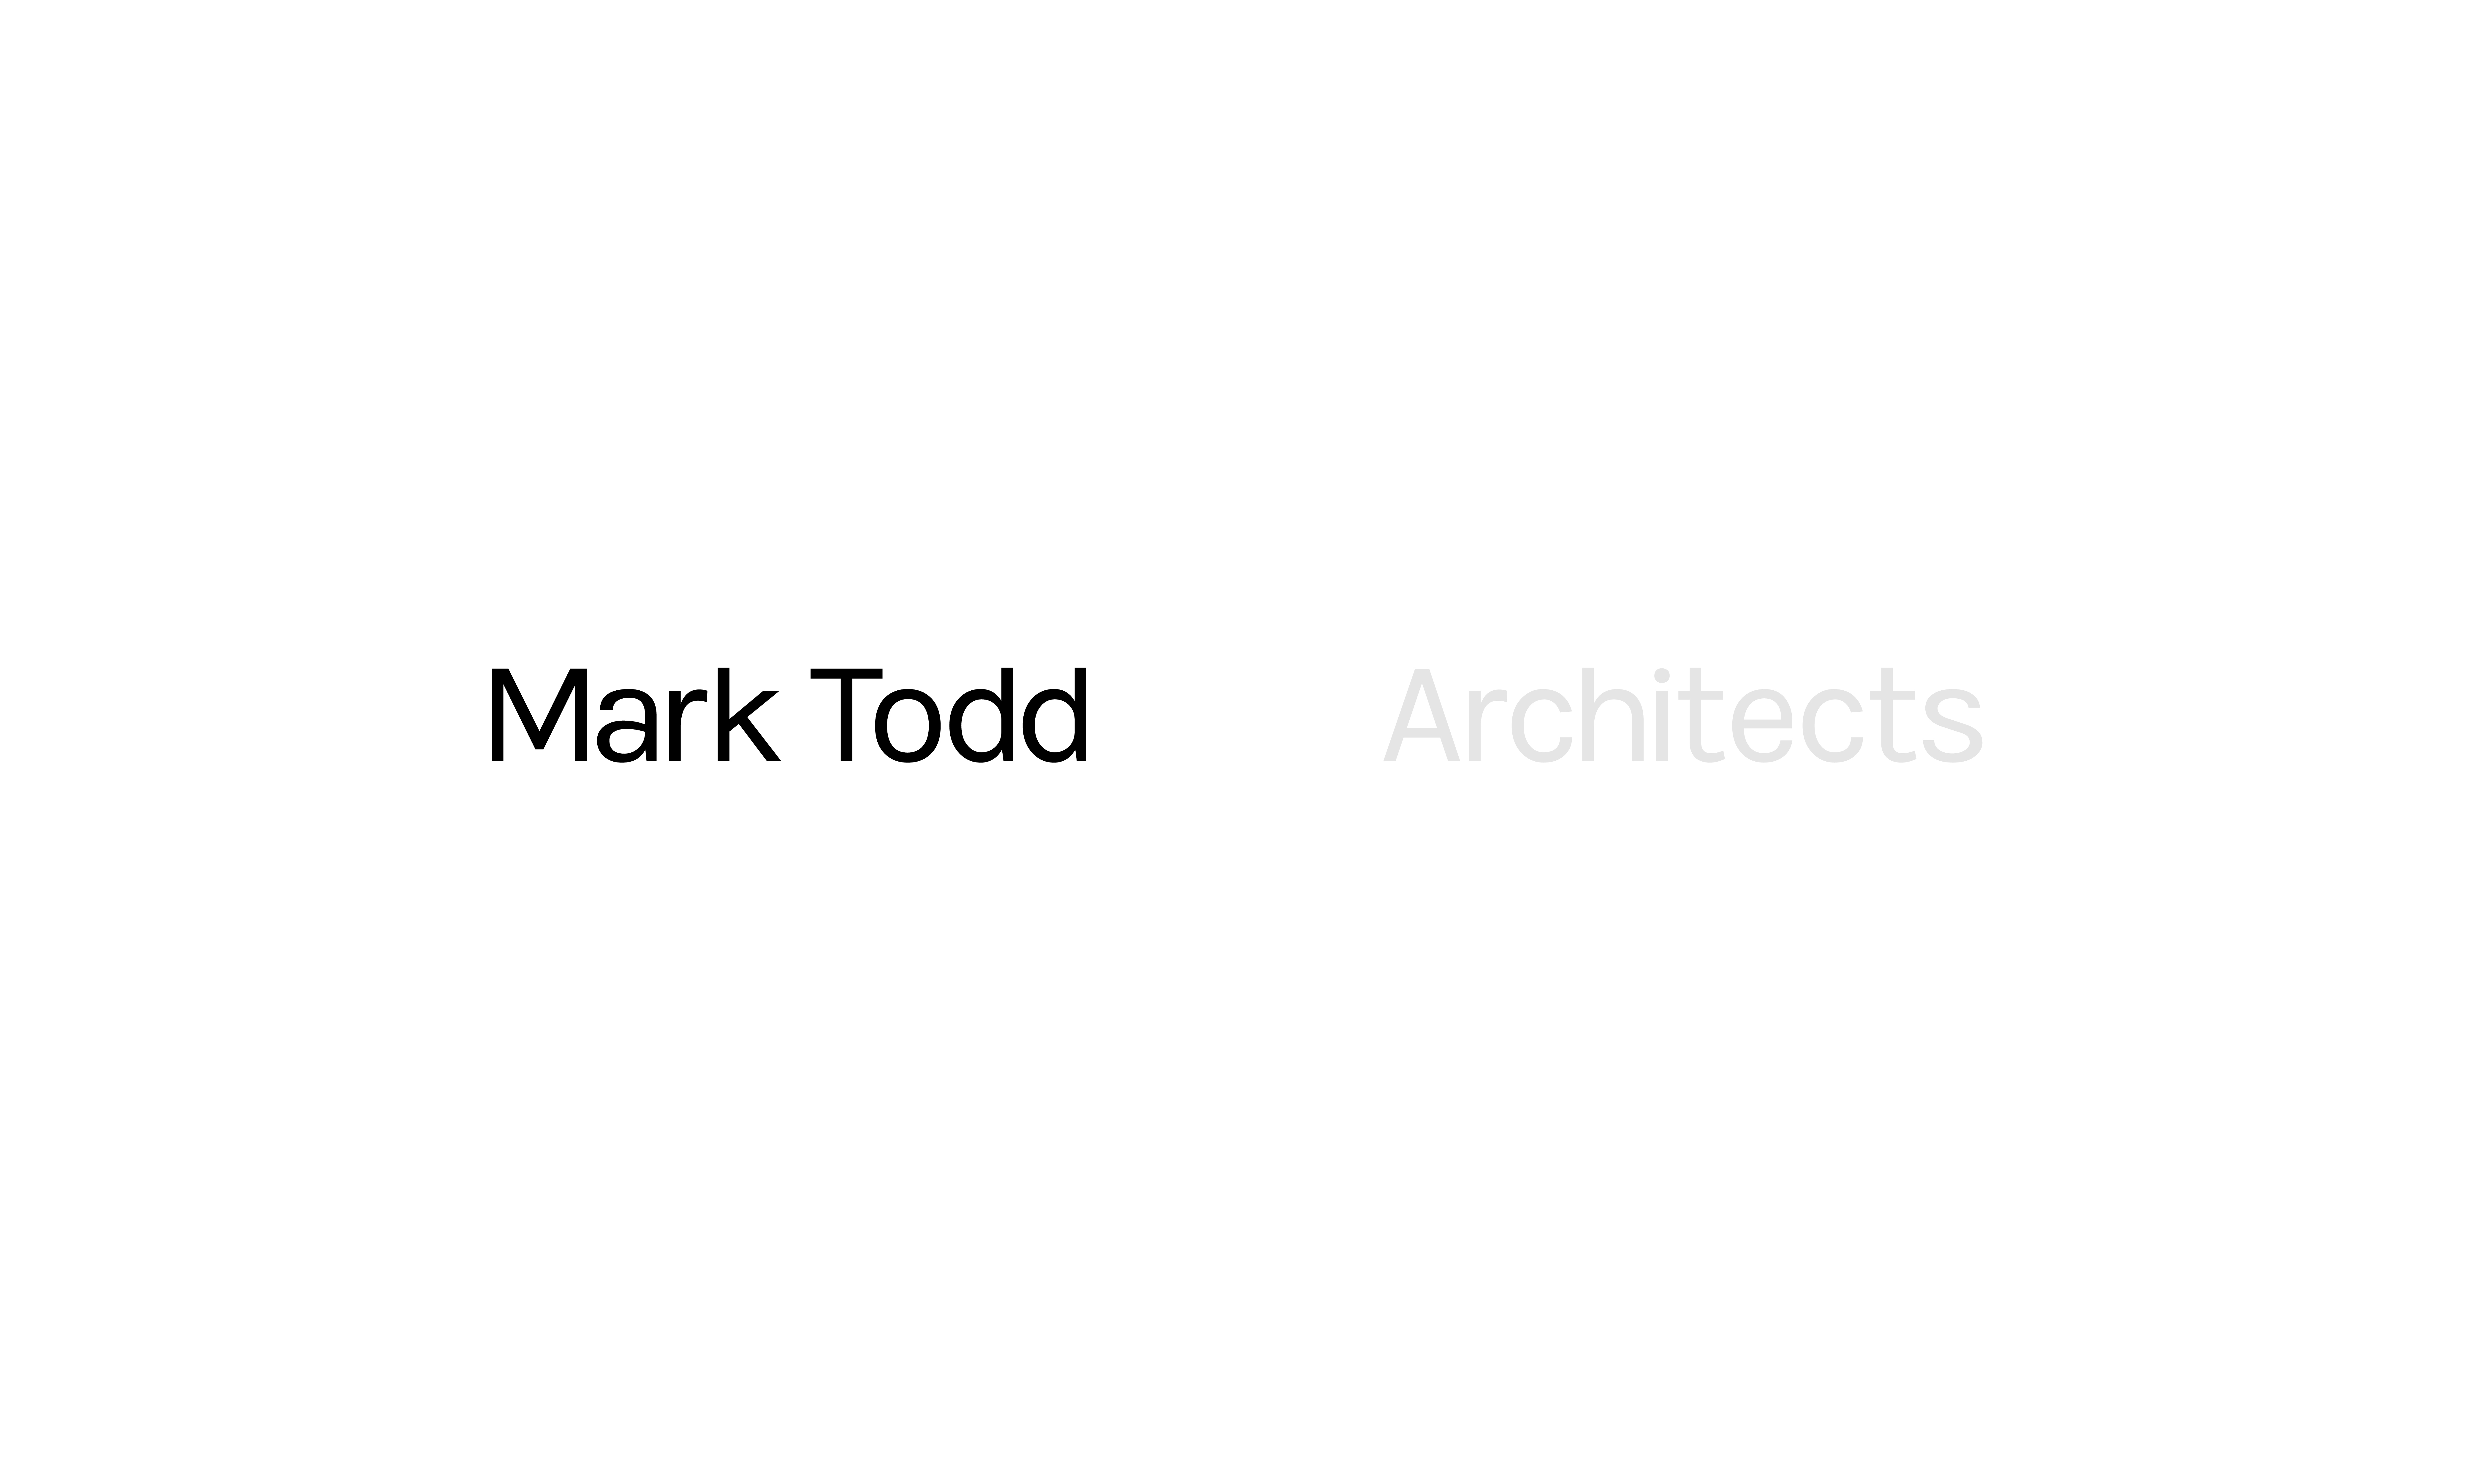 Cover image: Mark Todd Architects